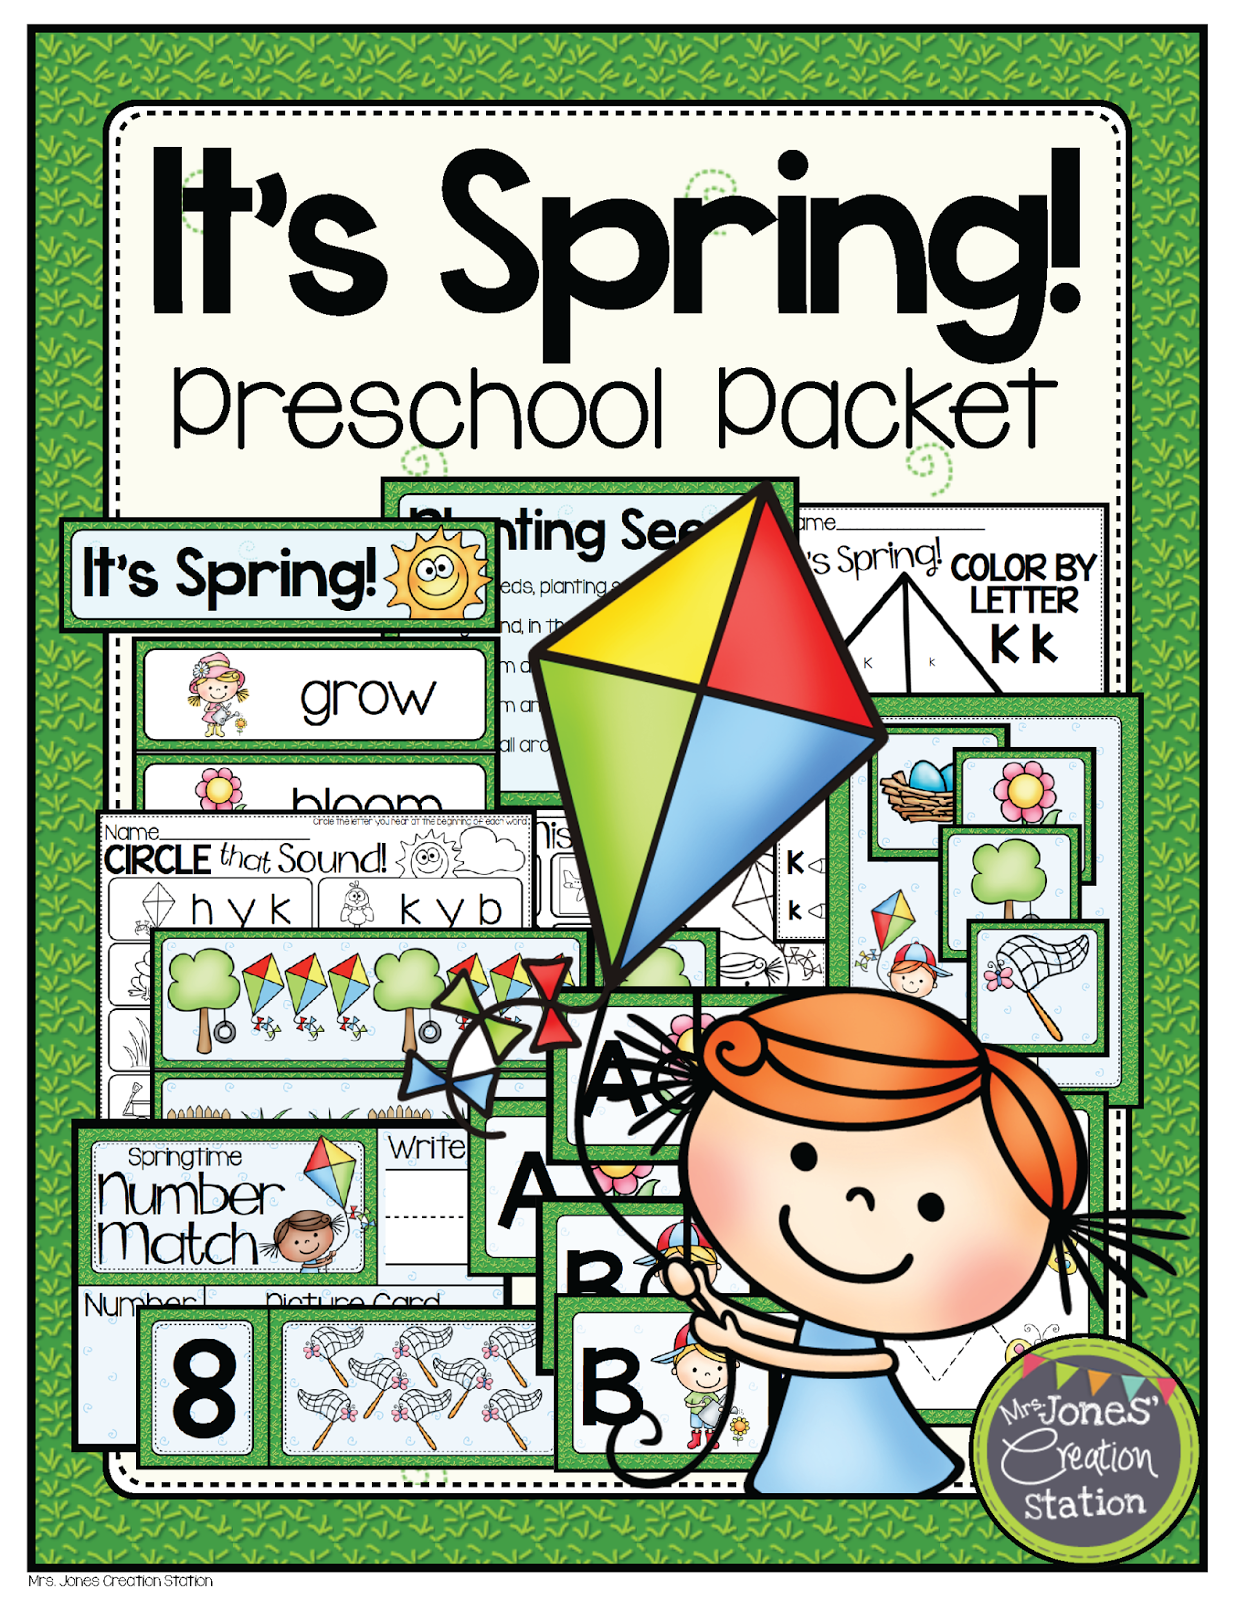 Scenery & Spring Pictures: Spring Pictures Preschool